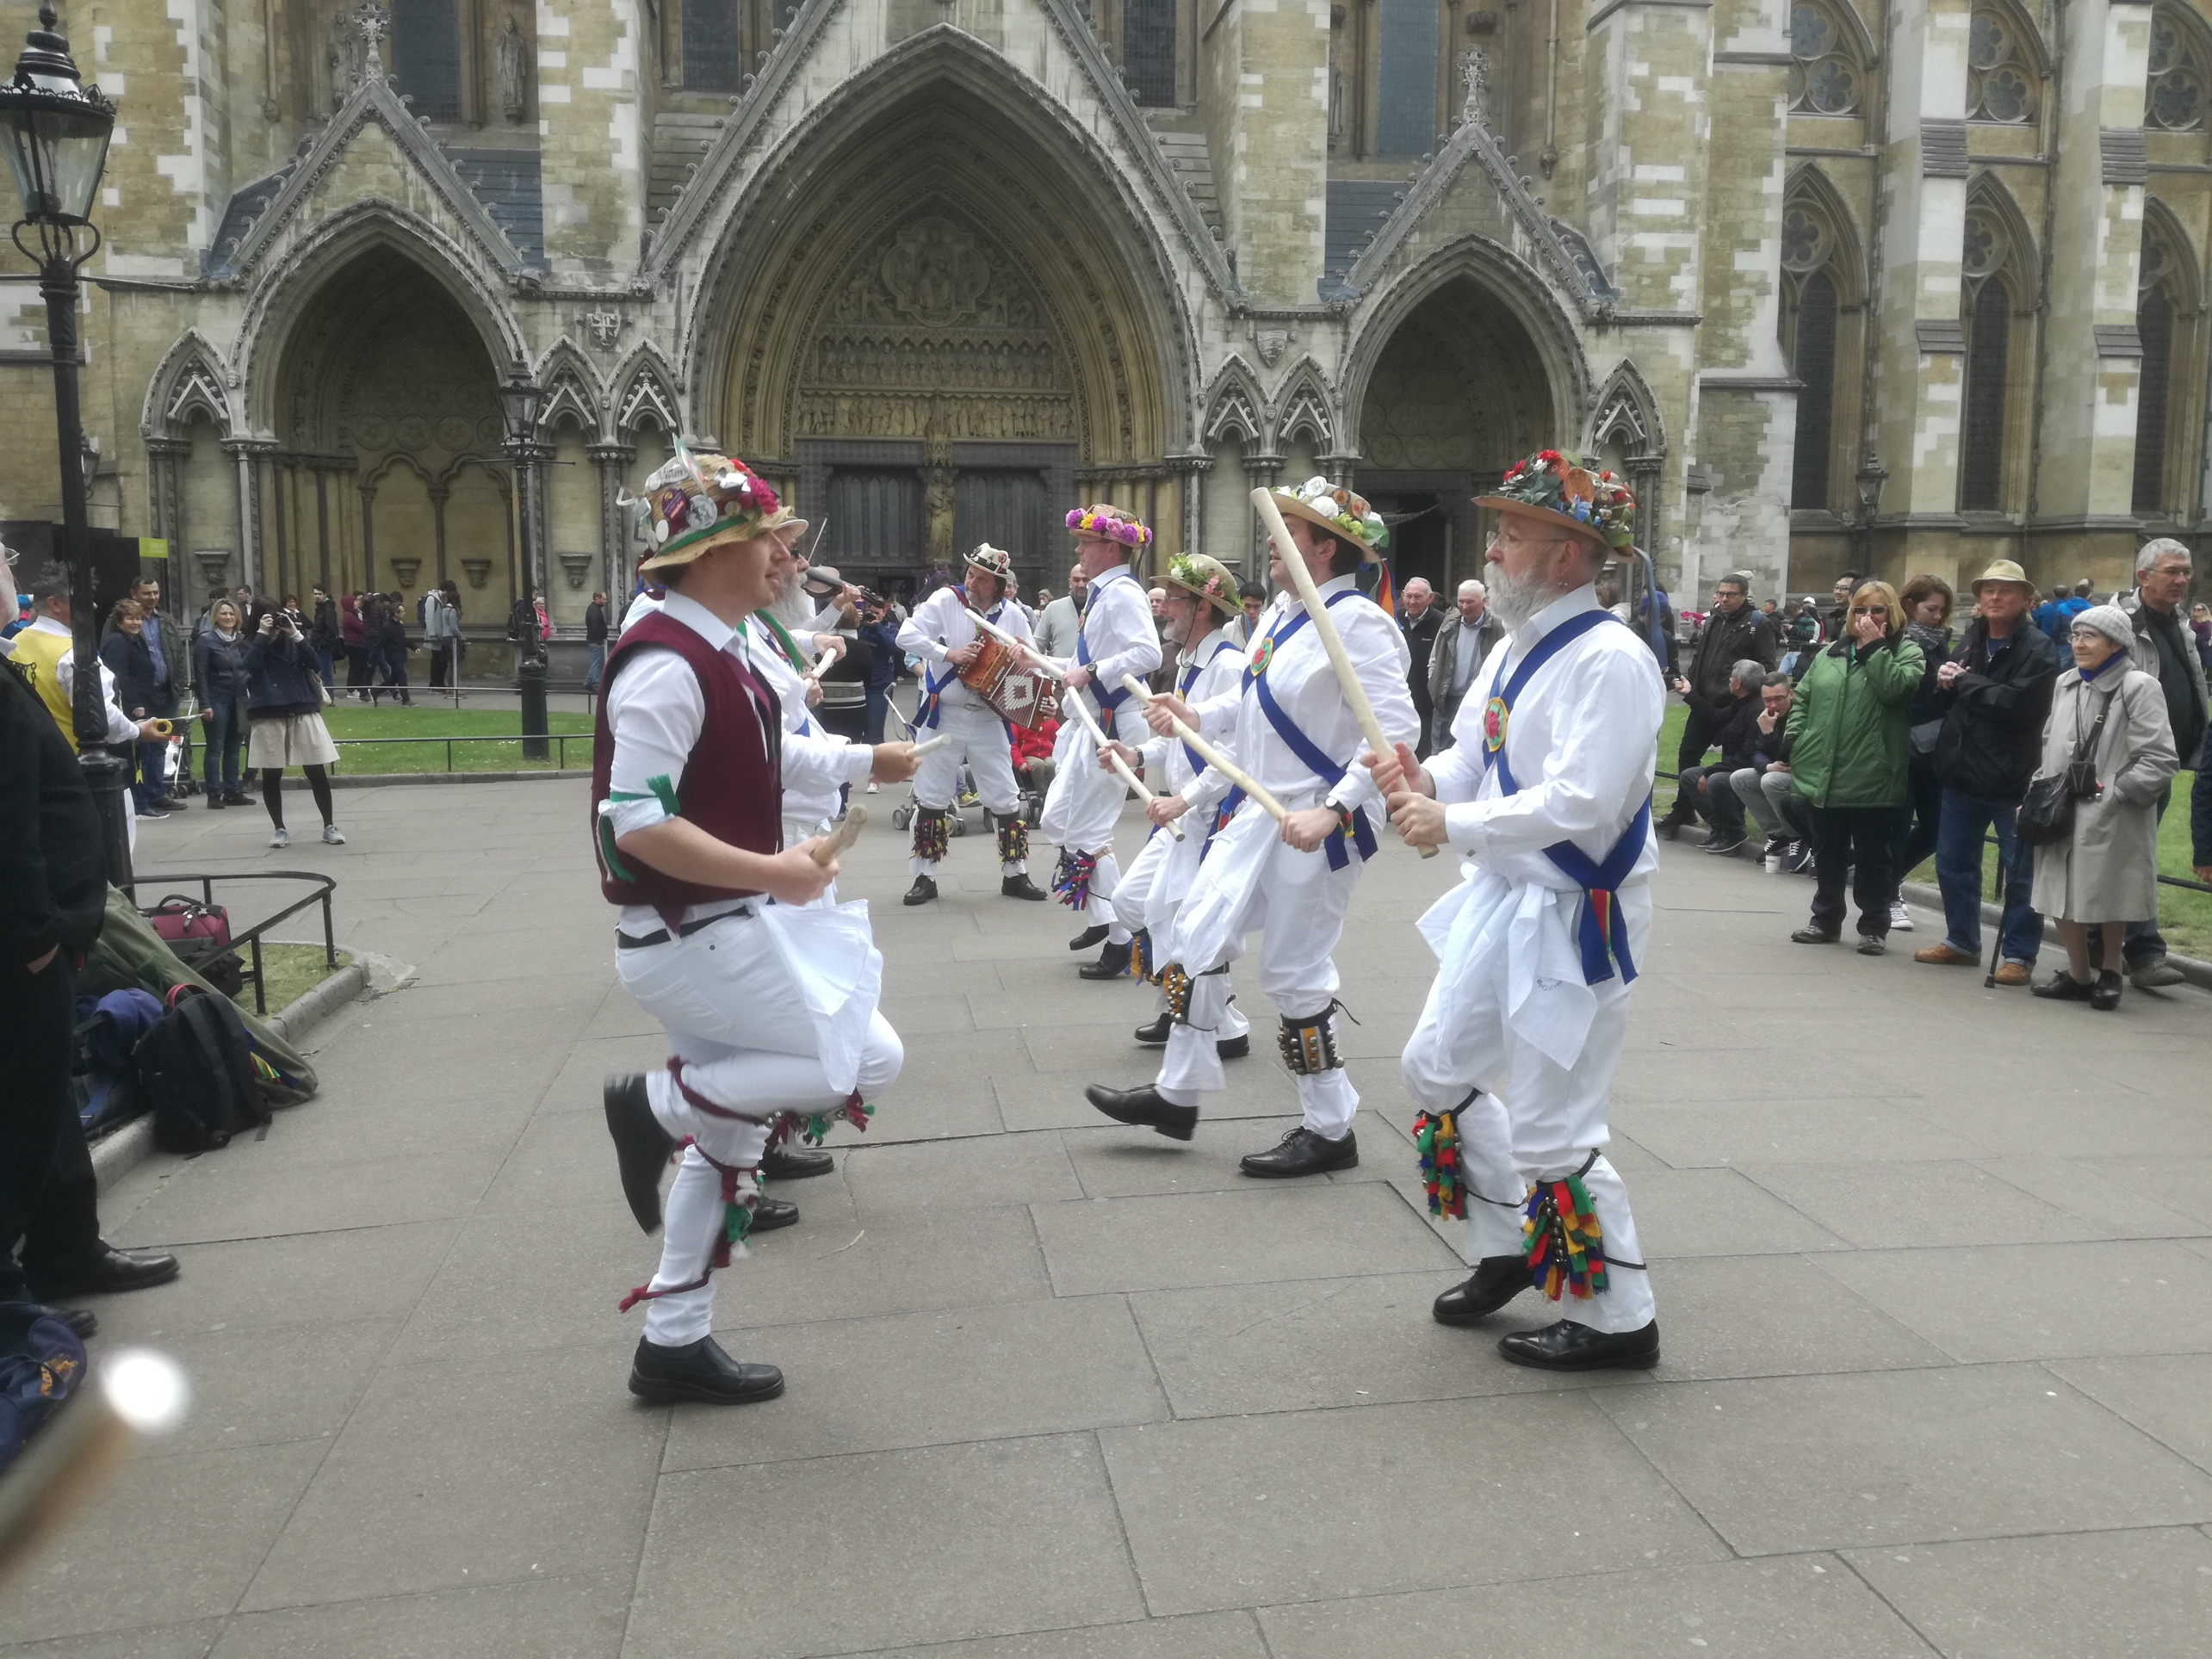 Dancing by St. Margaret's - Westminster Day of Dance 2017